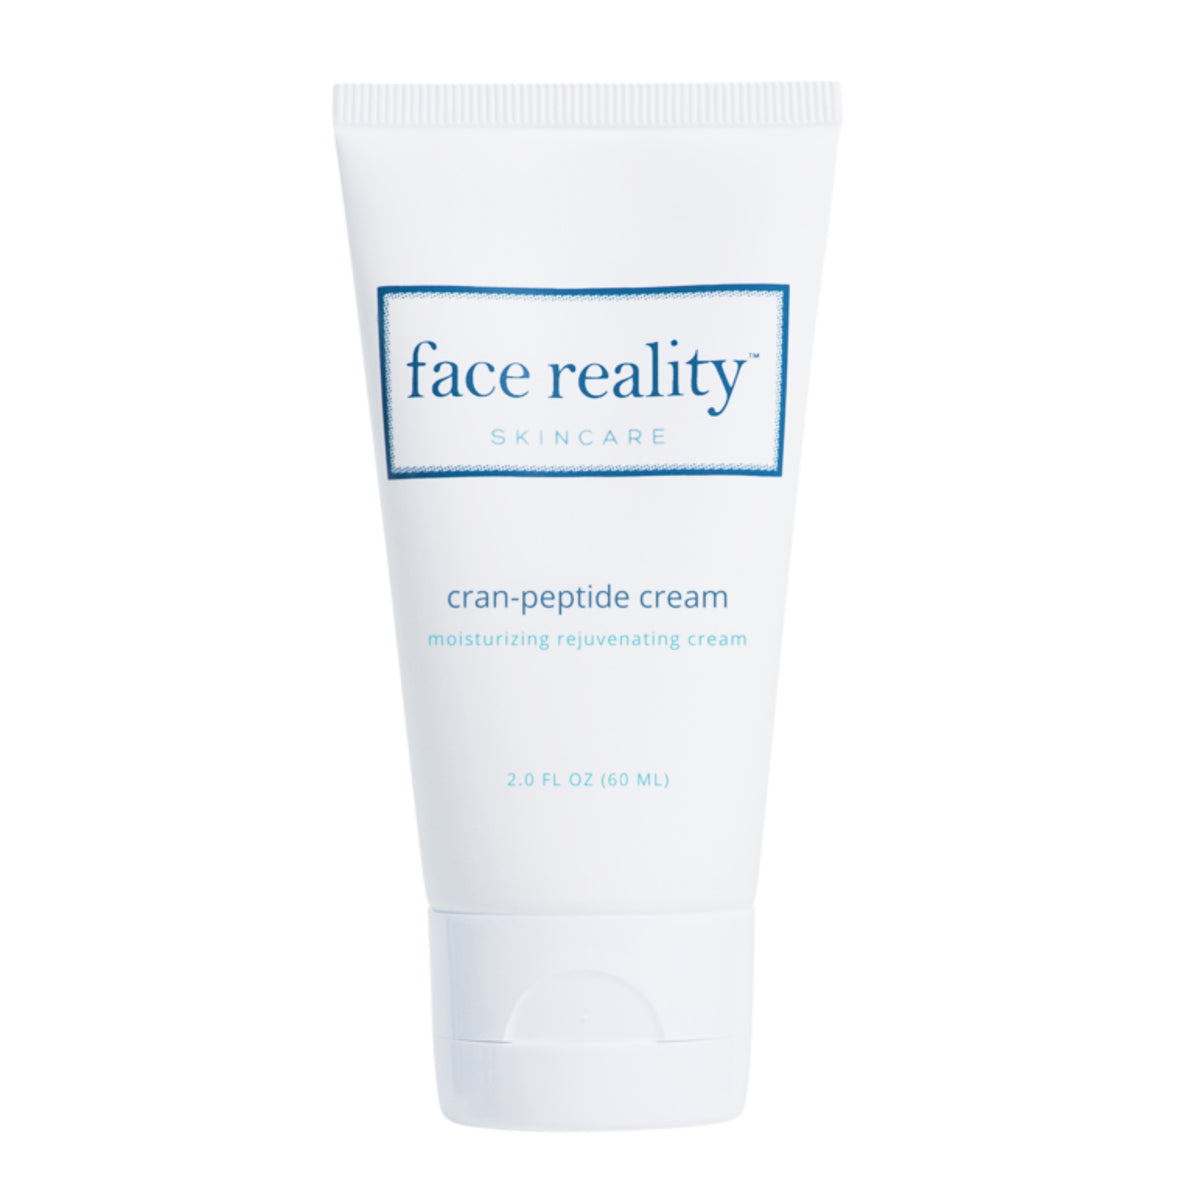 FACE REALITY - Cran-Peptide Cream - Beauty Nook